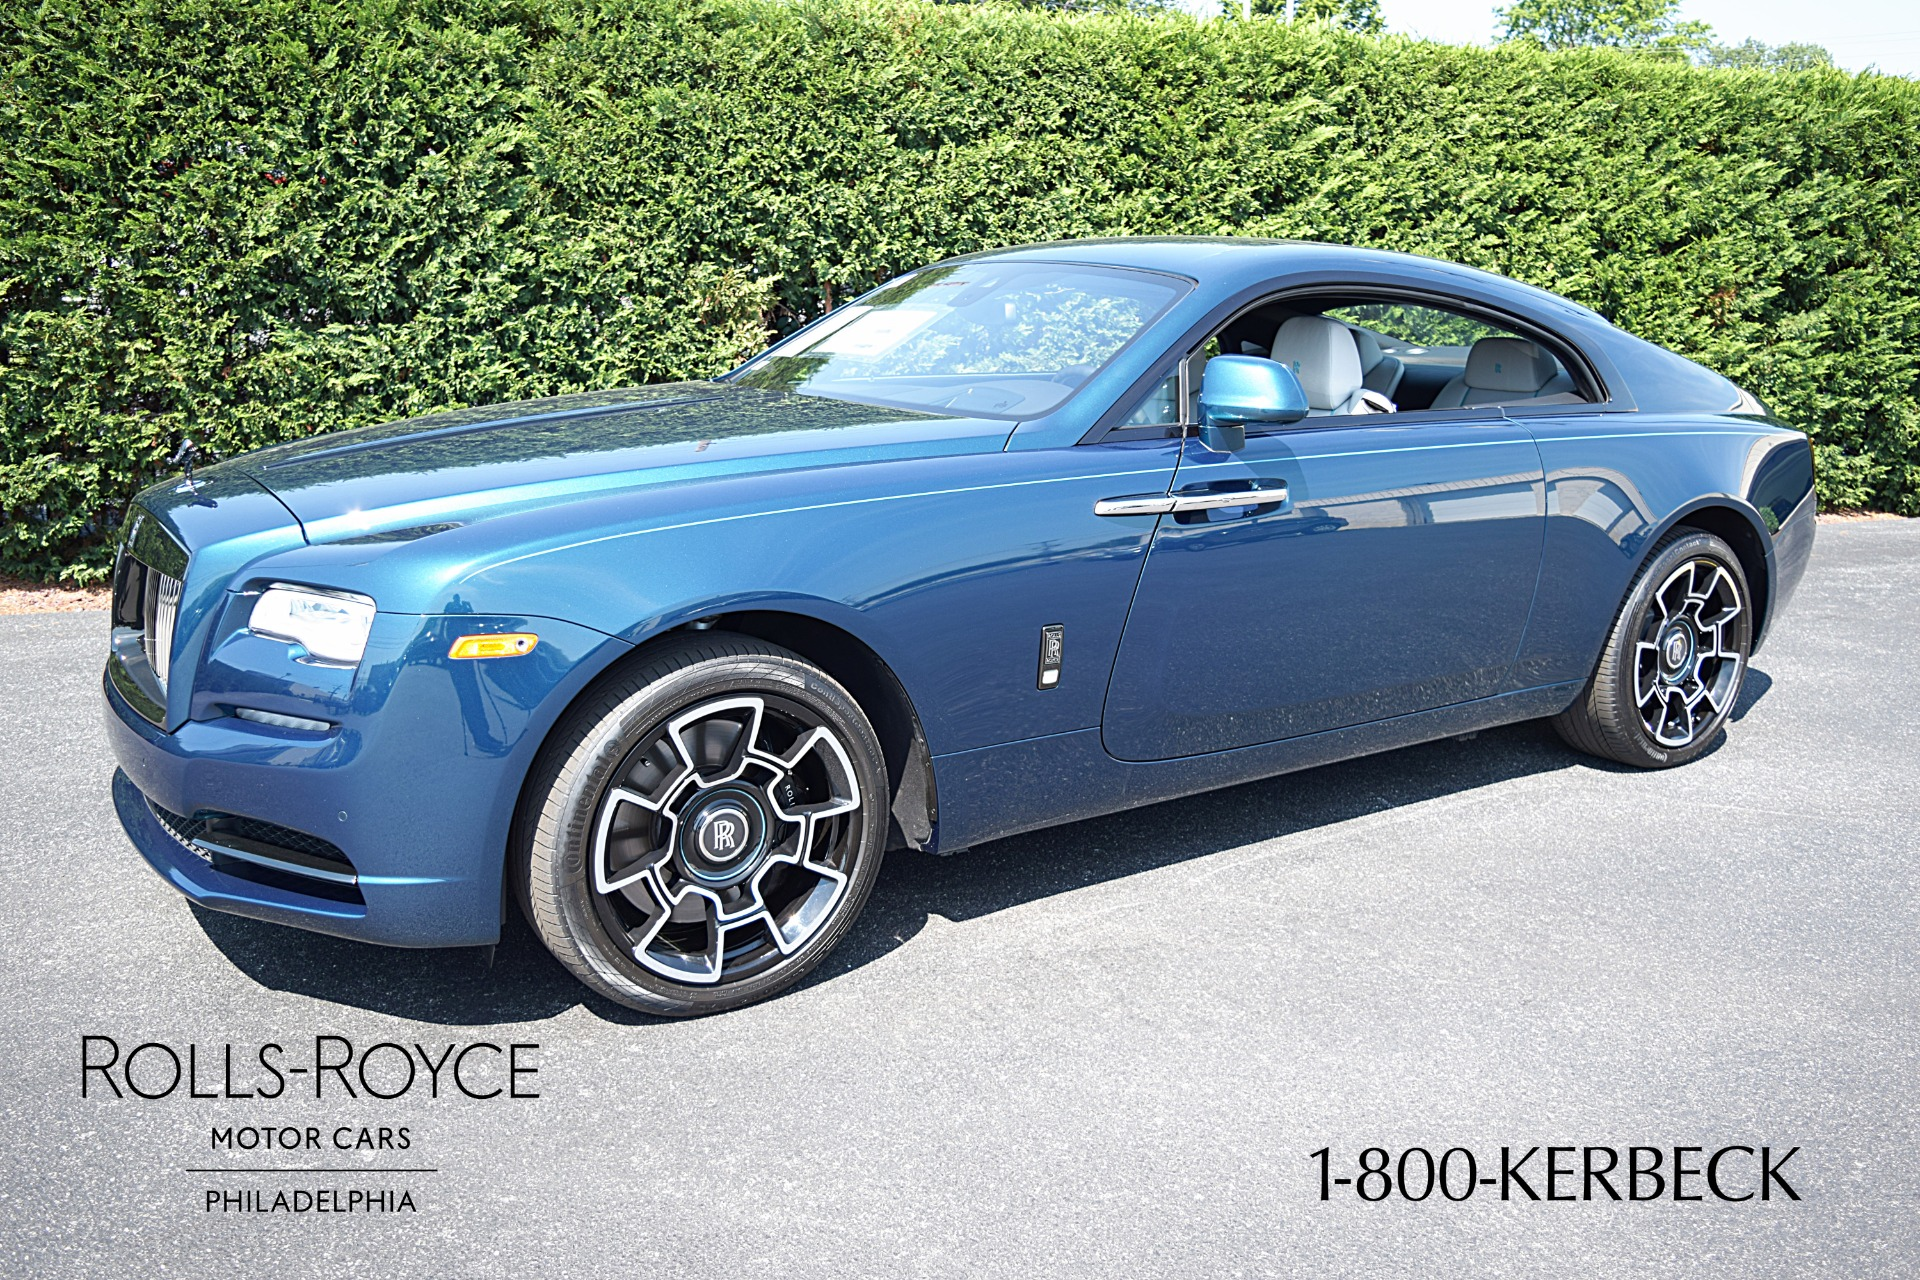 Used 2020 Rolls-Royce Wraith Black Badge for sale $459,880 at F.C. Kerbeck Aston Martin in Palmyra NJ 08065 2